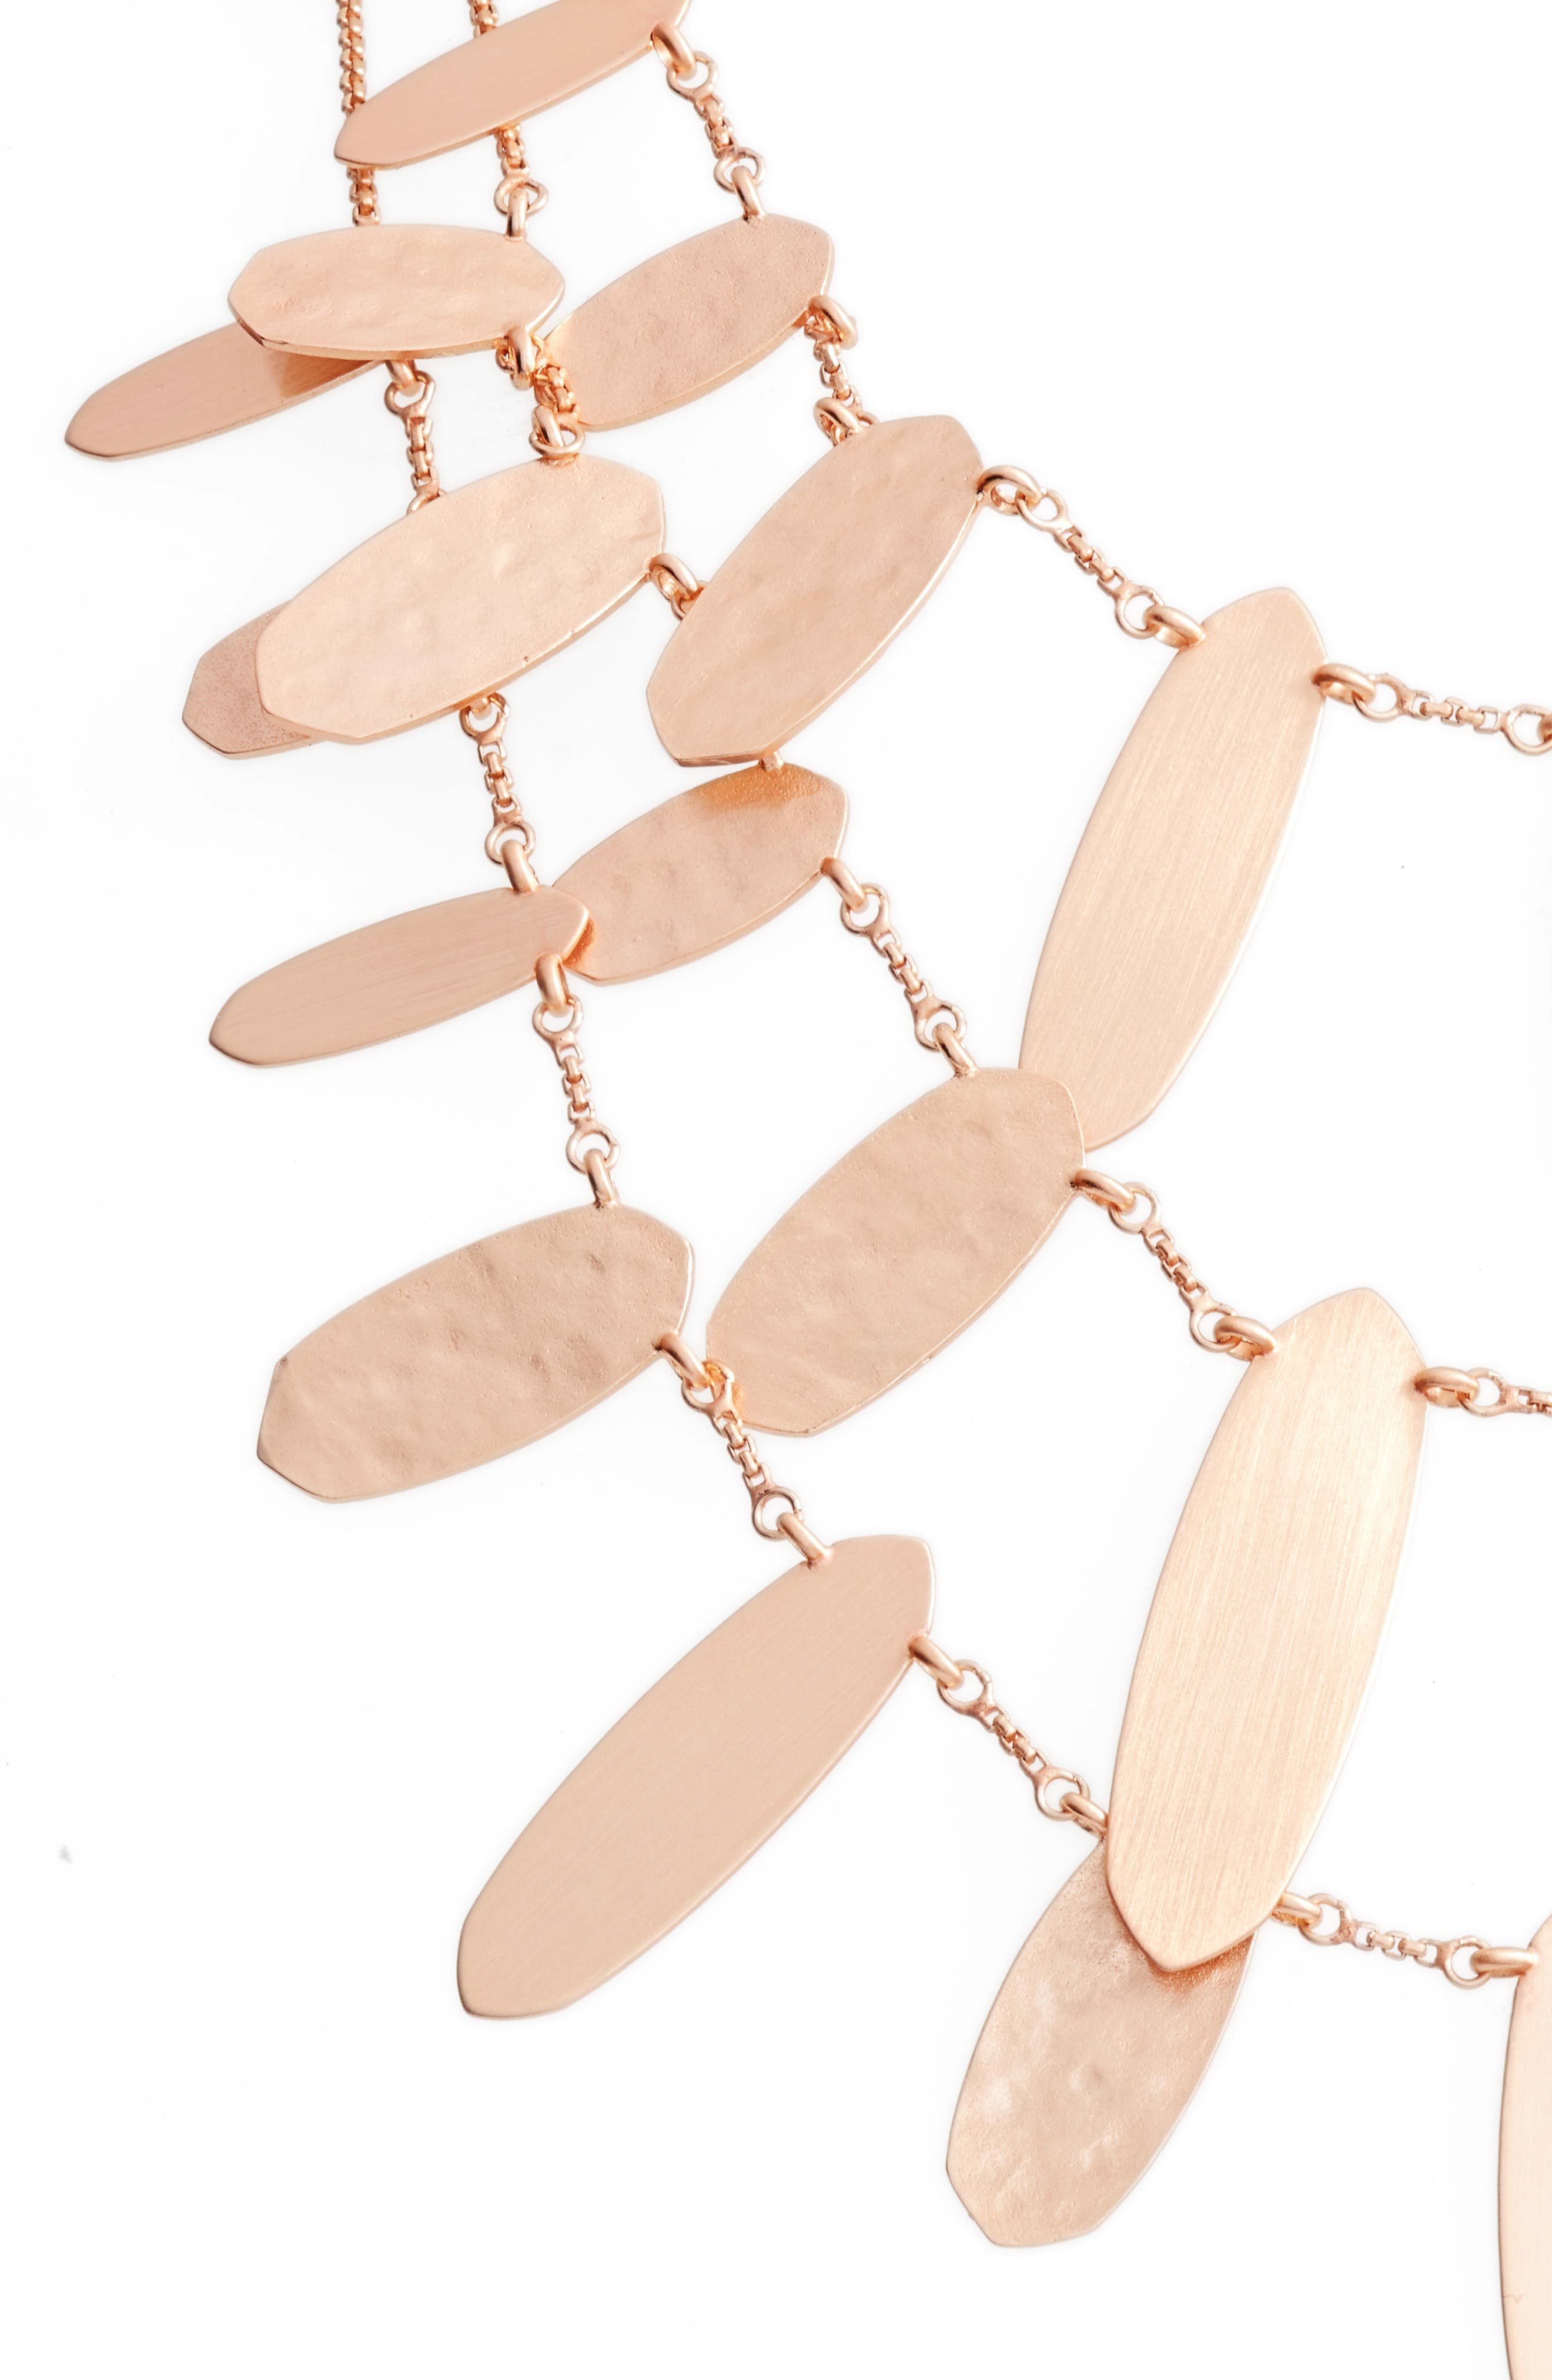 Nettie Multistrand Necklace,                             Alternate thumbnail 2, color,                             Rose Gold